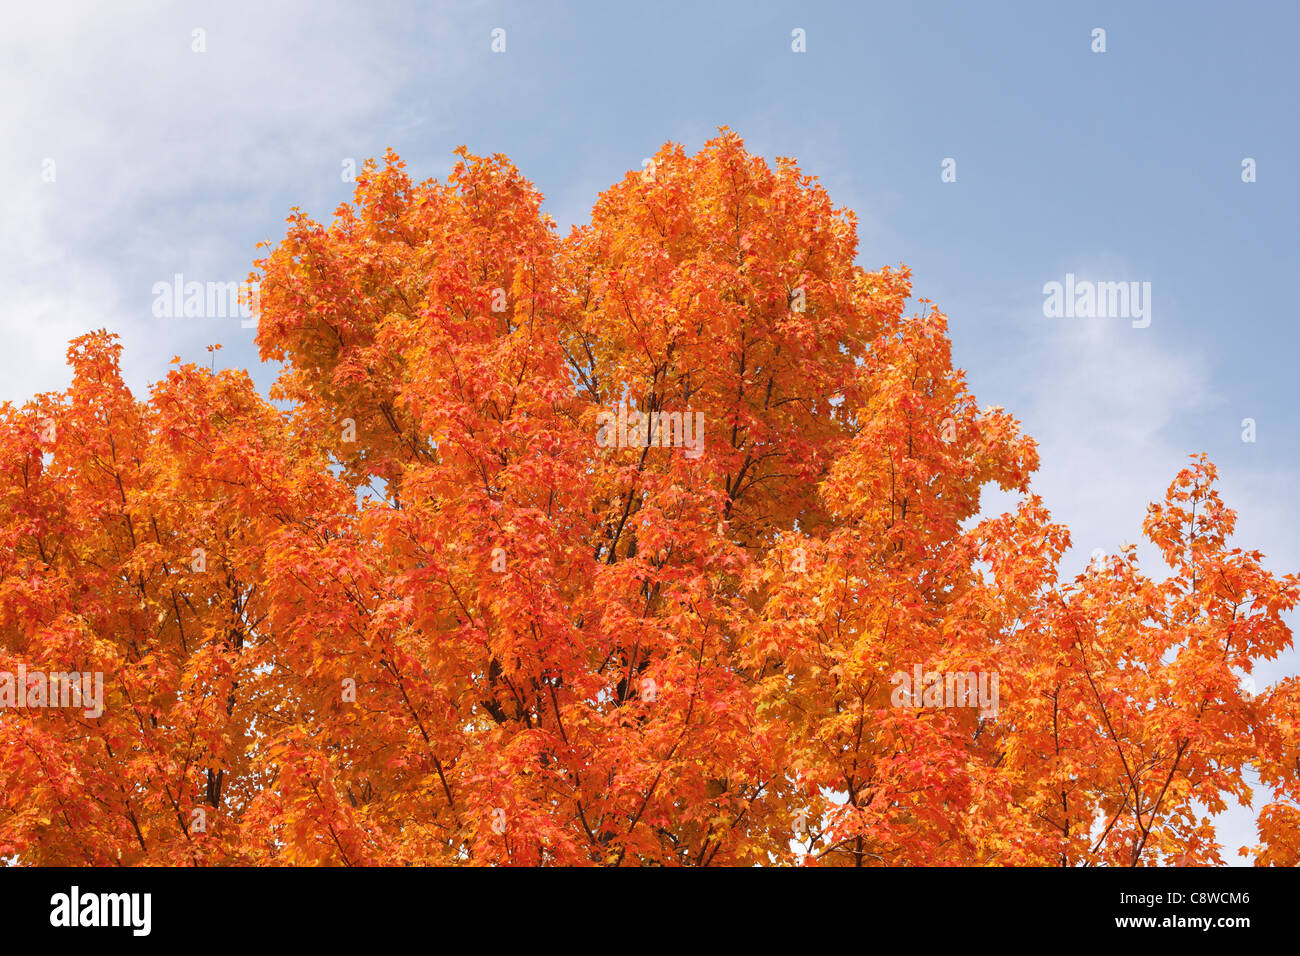 Maple tree leaves turning orange in the fall. - Stock Image